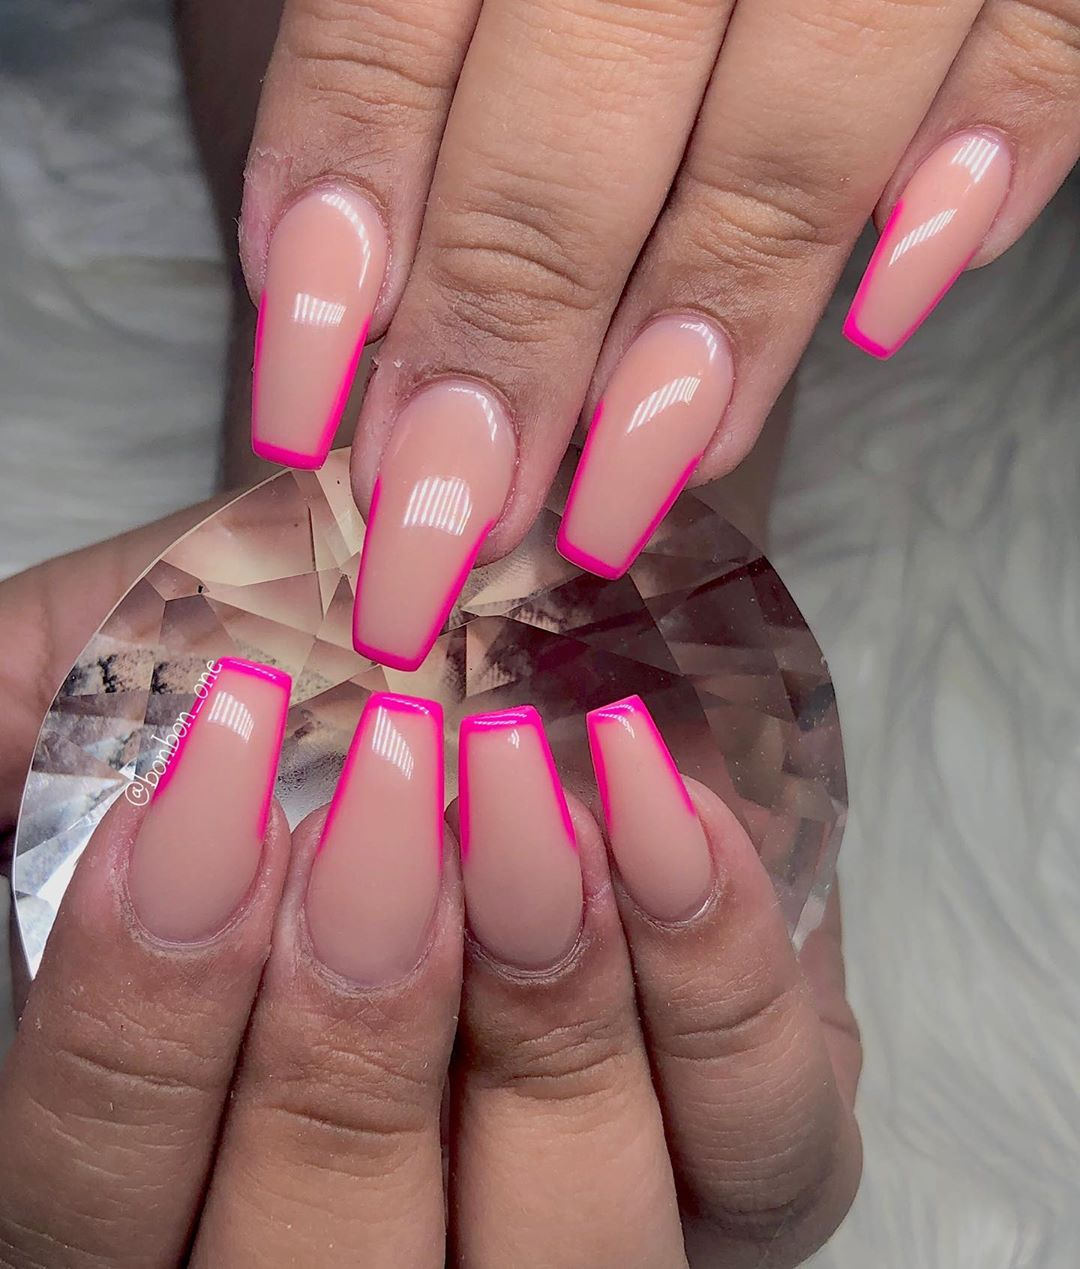 nude-and-pink-manicure-trend-2020-style-rave